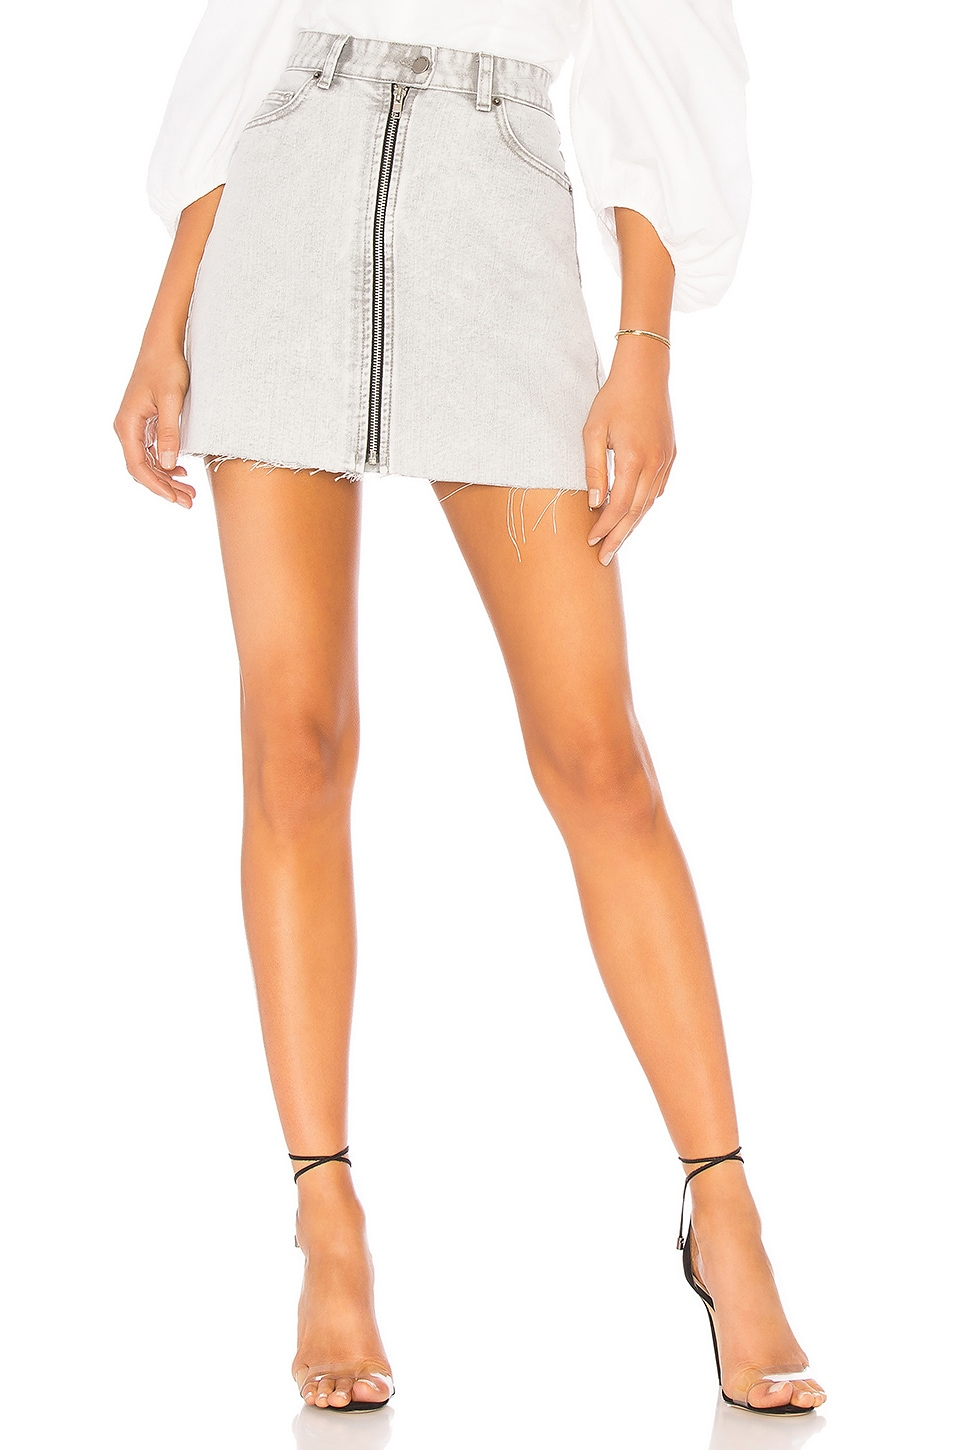 Dr. Denim Dillon Denim Skirt in Dirty White